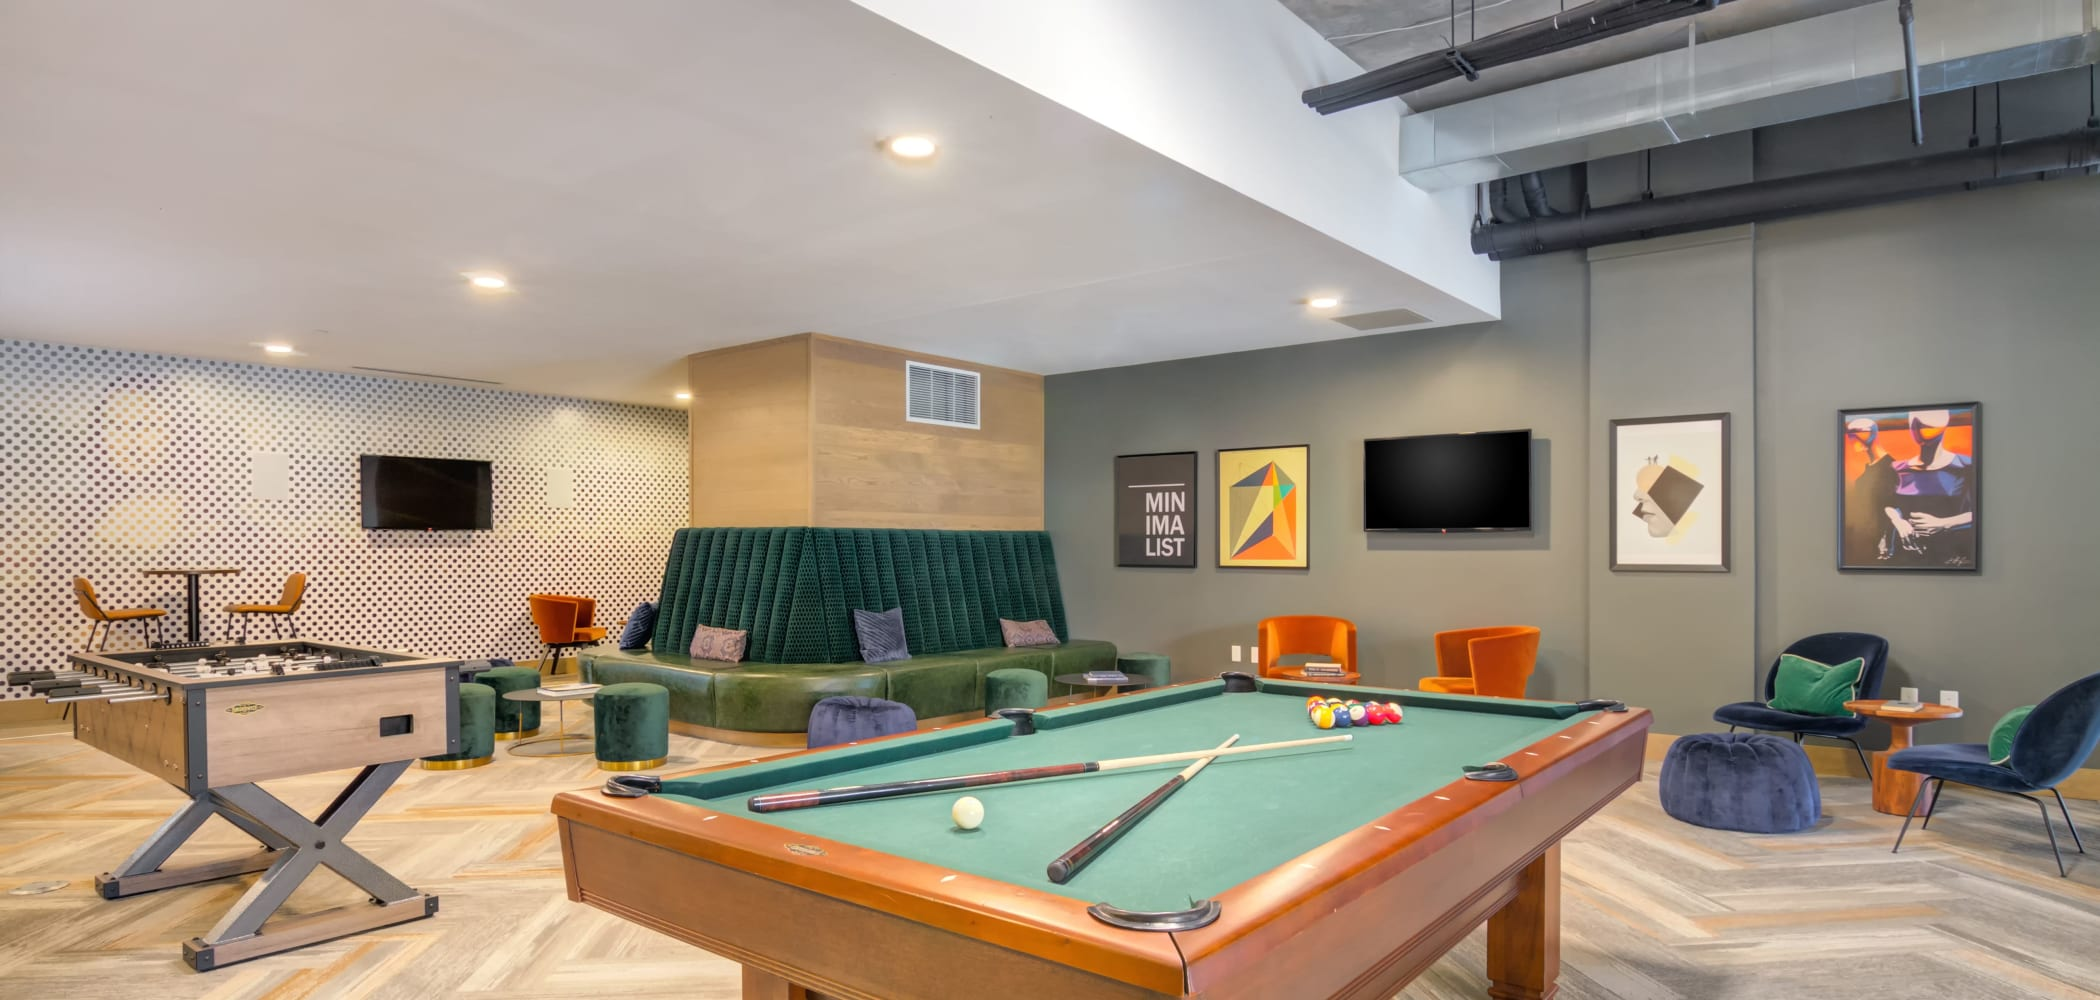 Community game room at The Link Minneapolis in Minneapolis, Minnesota